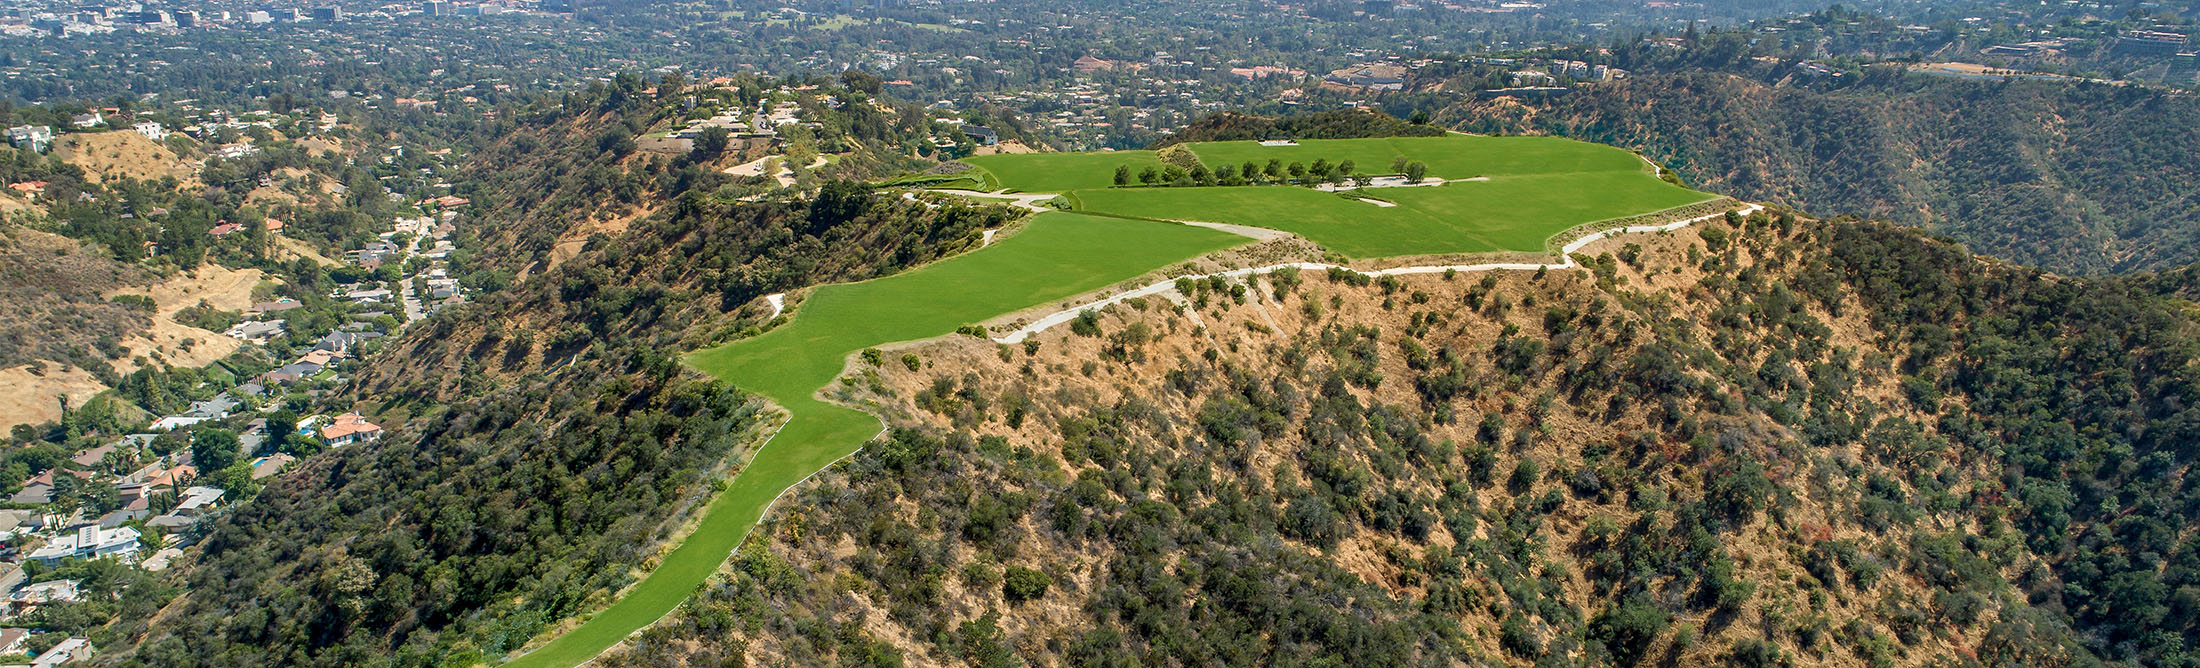 $1 Billion Property For Sale Atop Beverly Hills - Bloomberg